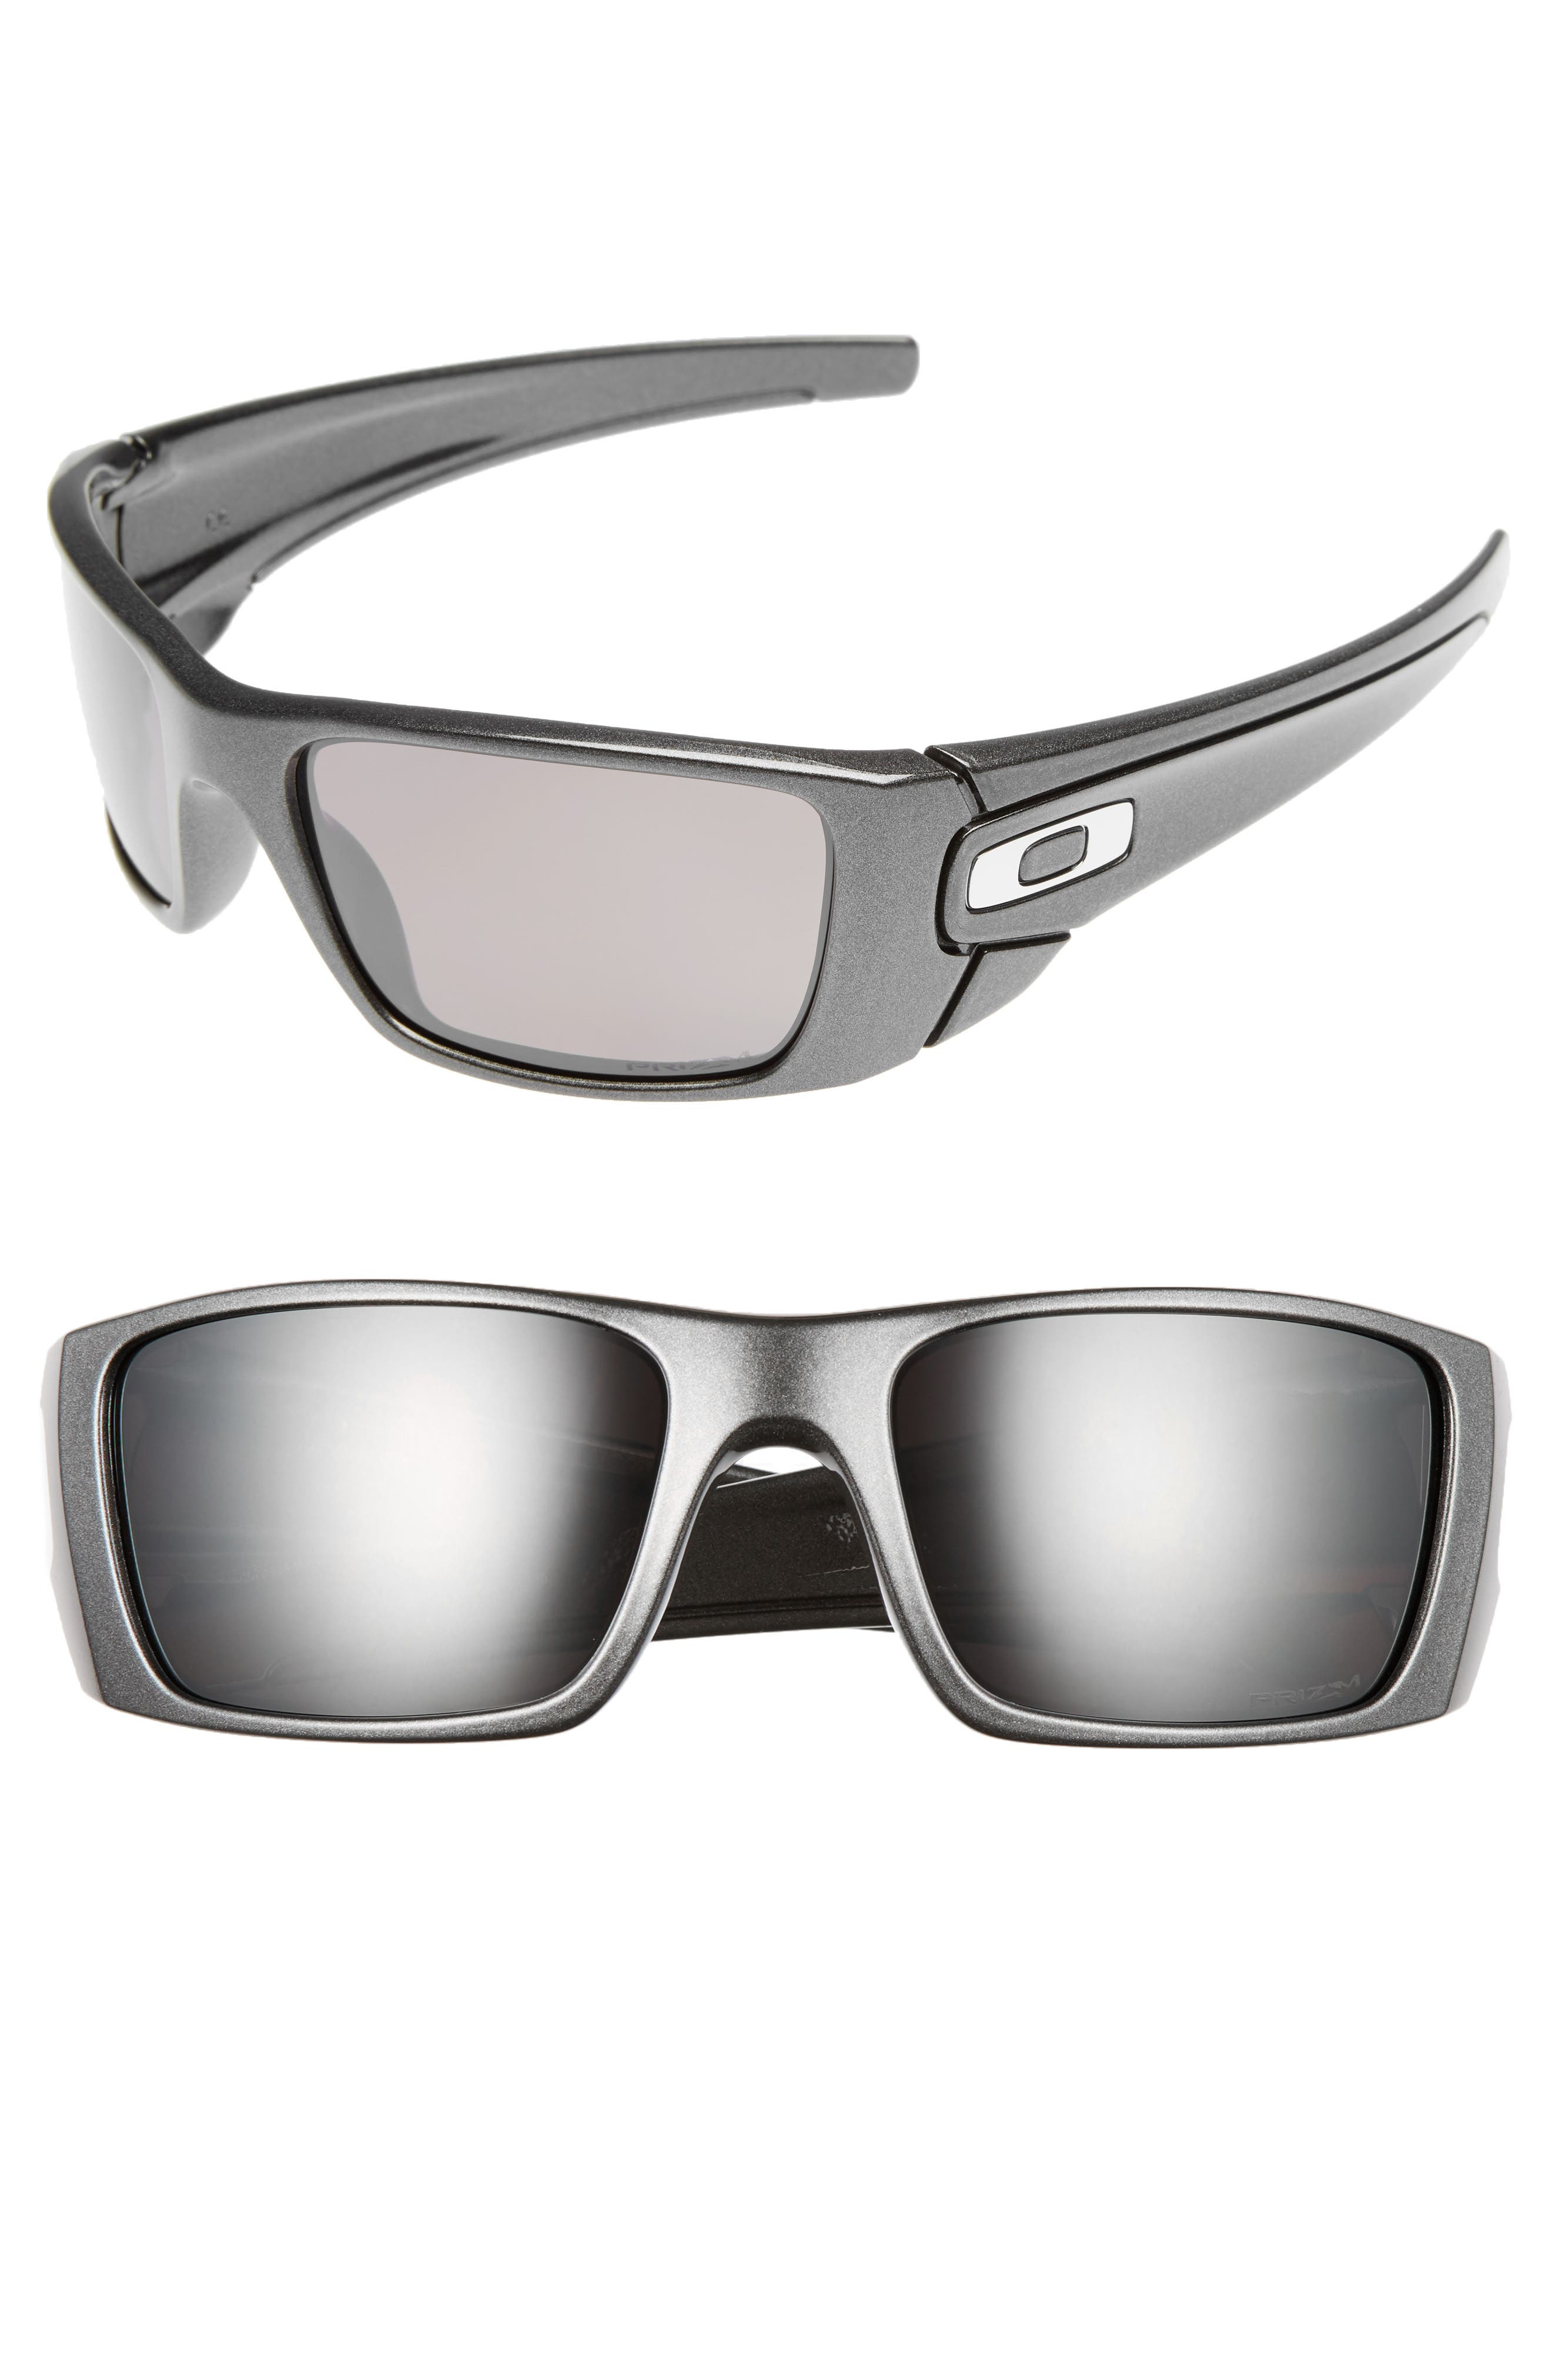 Fuel Cell 60mm Polarized Sunglasses,                         Main,                         color, 020